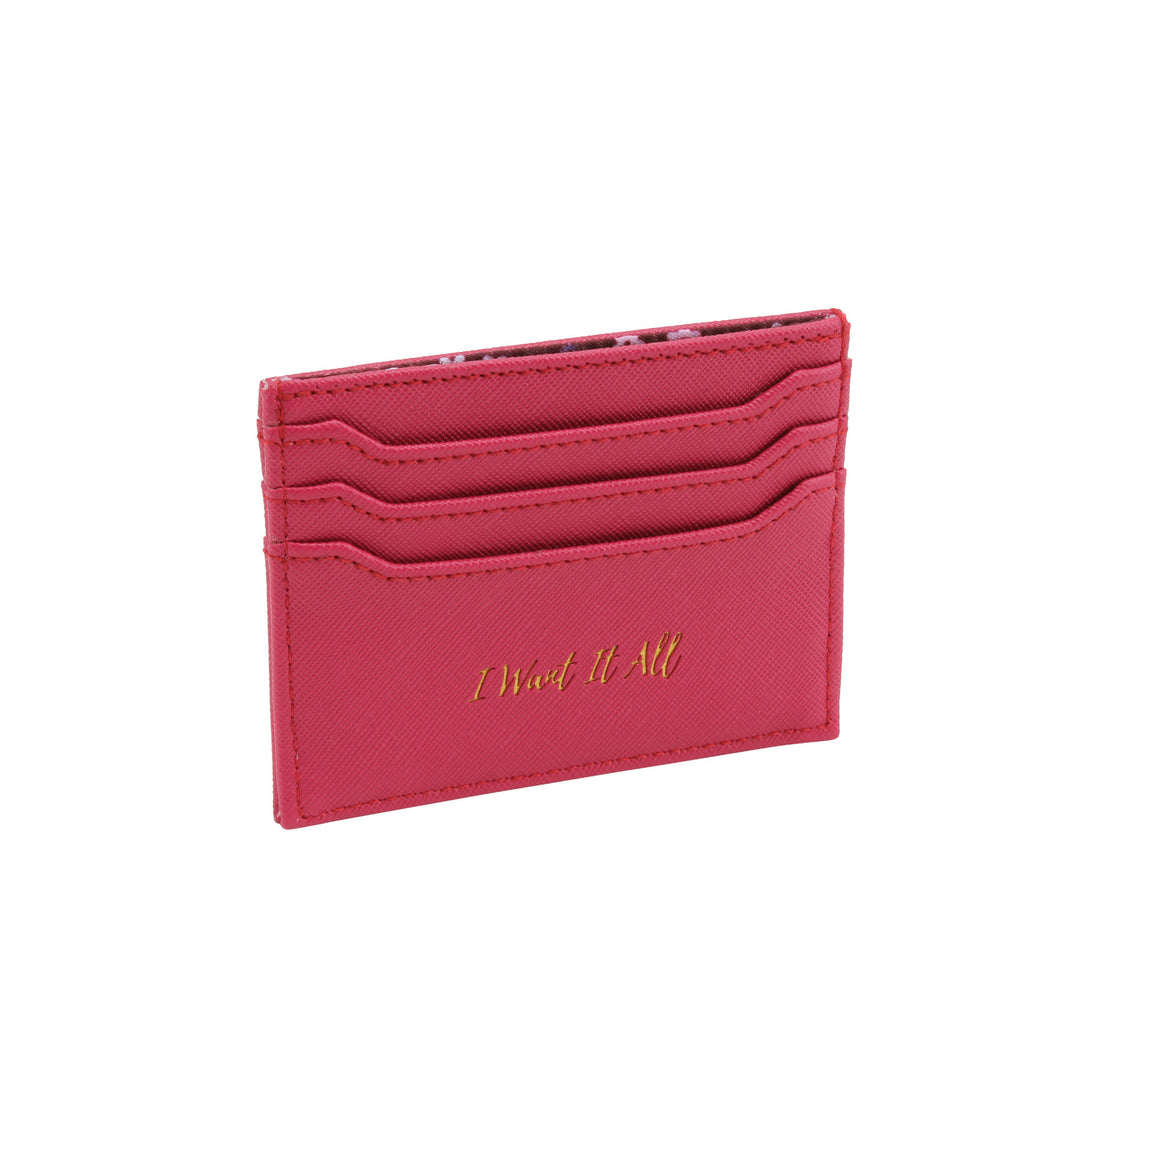 Willow & Rose 'I Want It All' Berry Card Holder